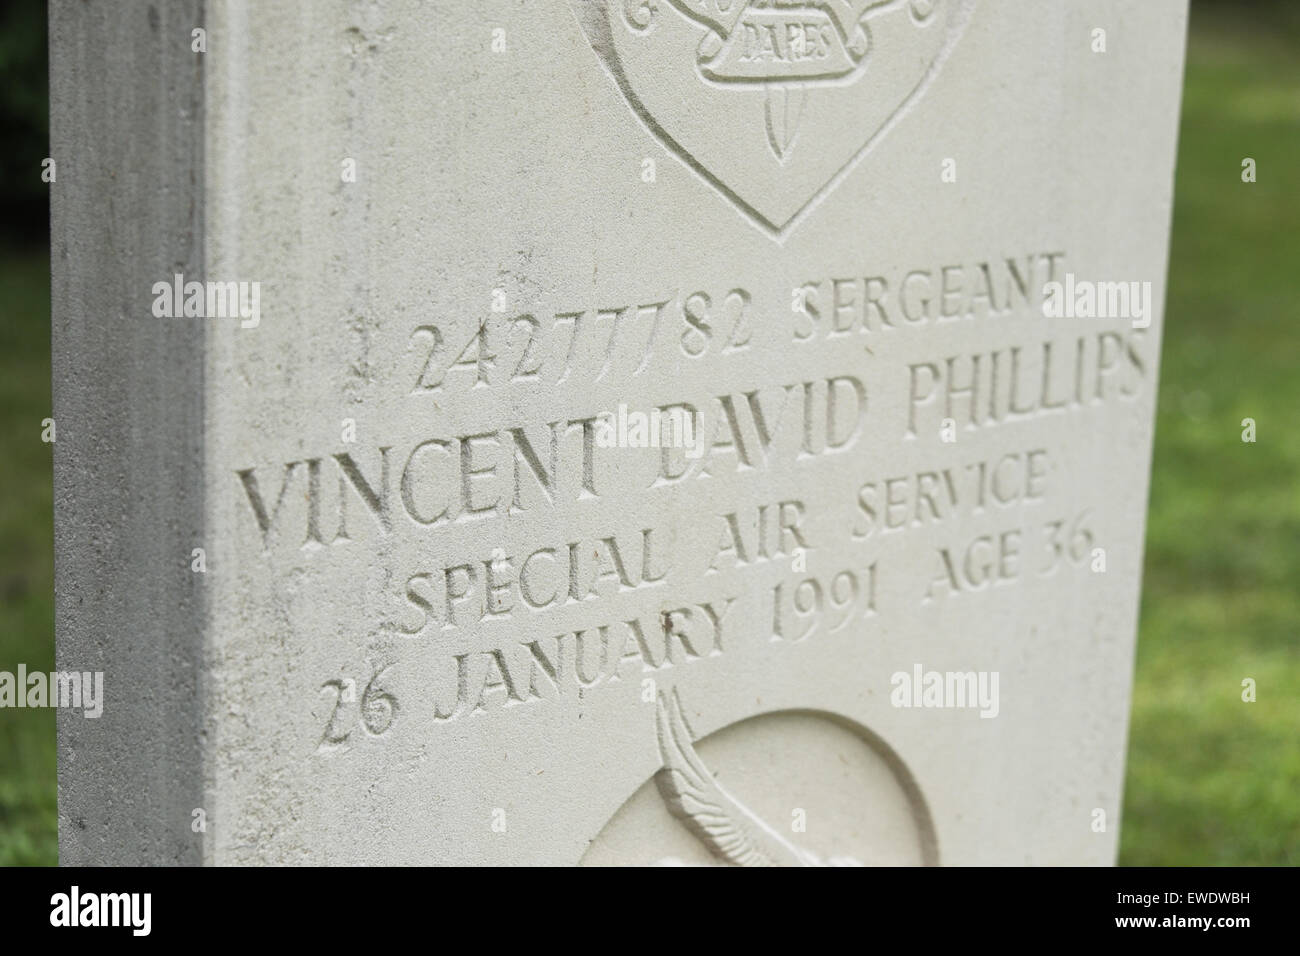 Grave headstone of SAS Regiment soldier Vincent David Phillips in Hereford - Vince Phillips died in January 1991 - Stock Image